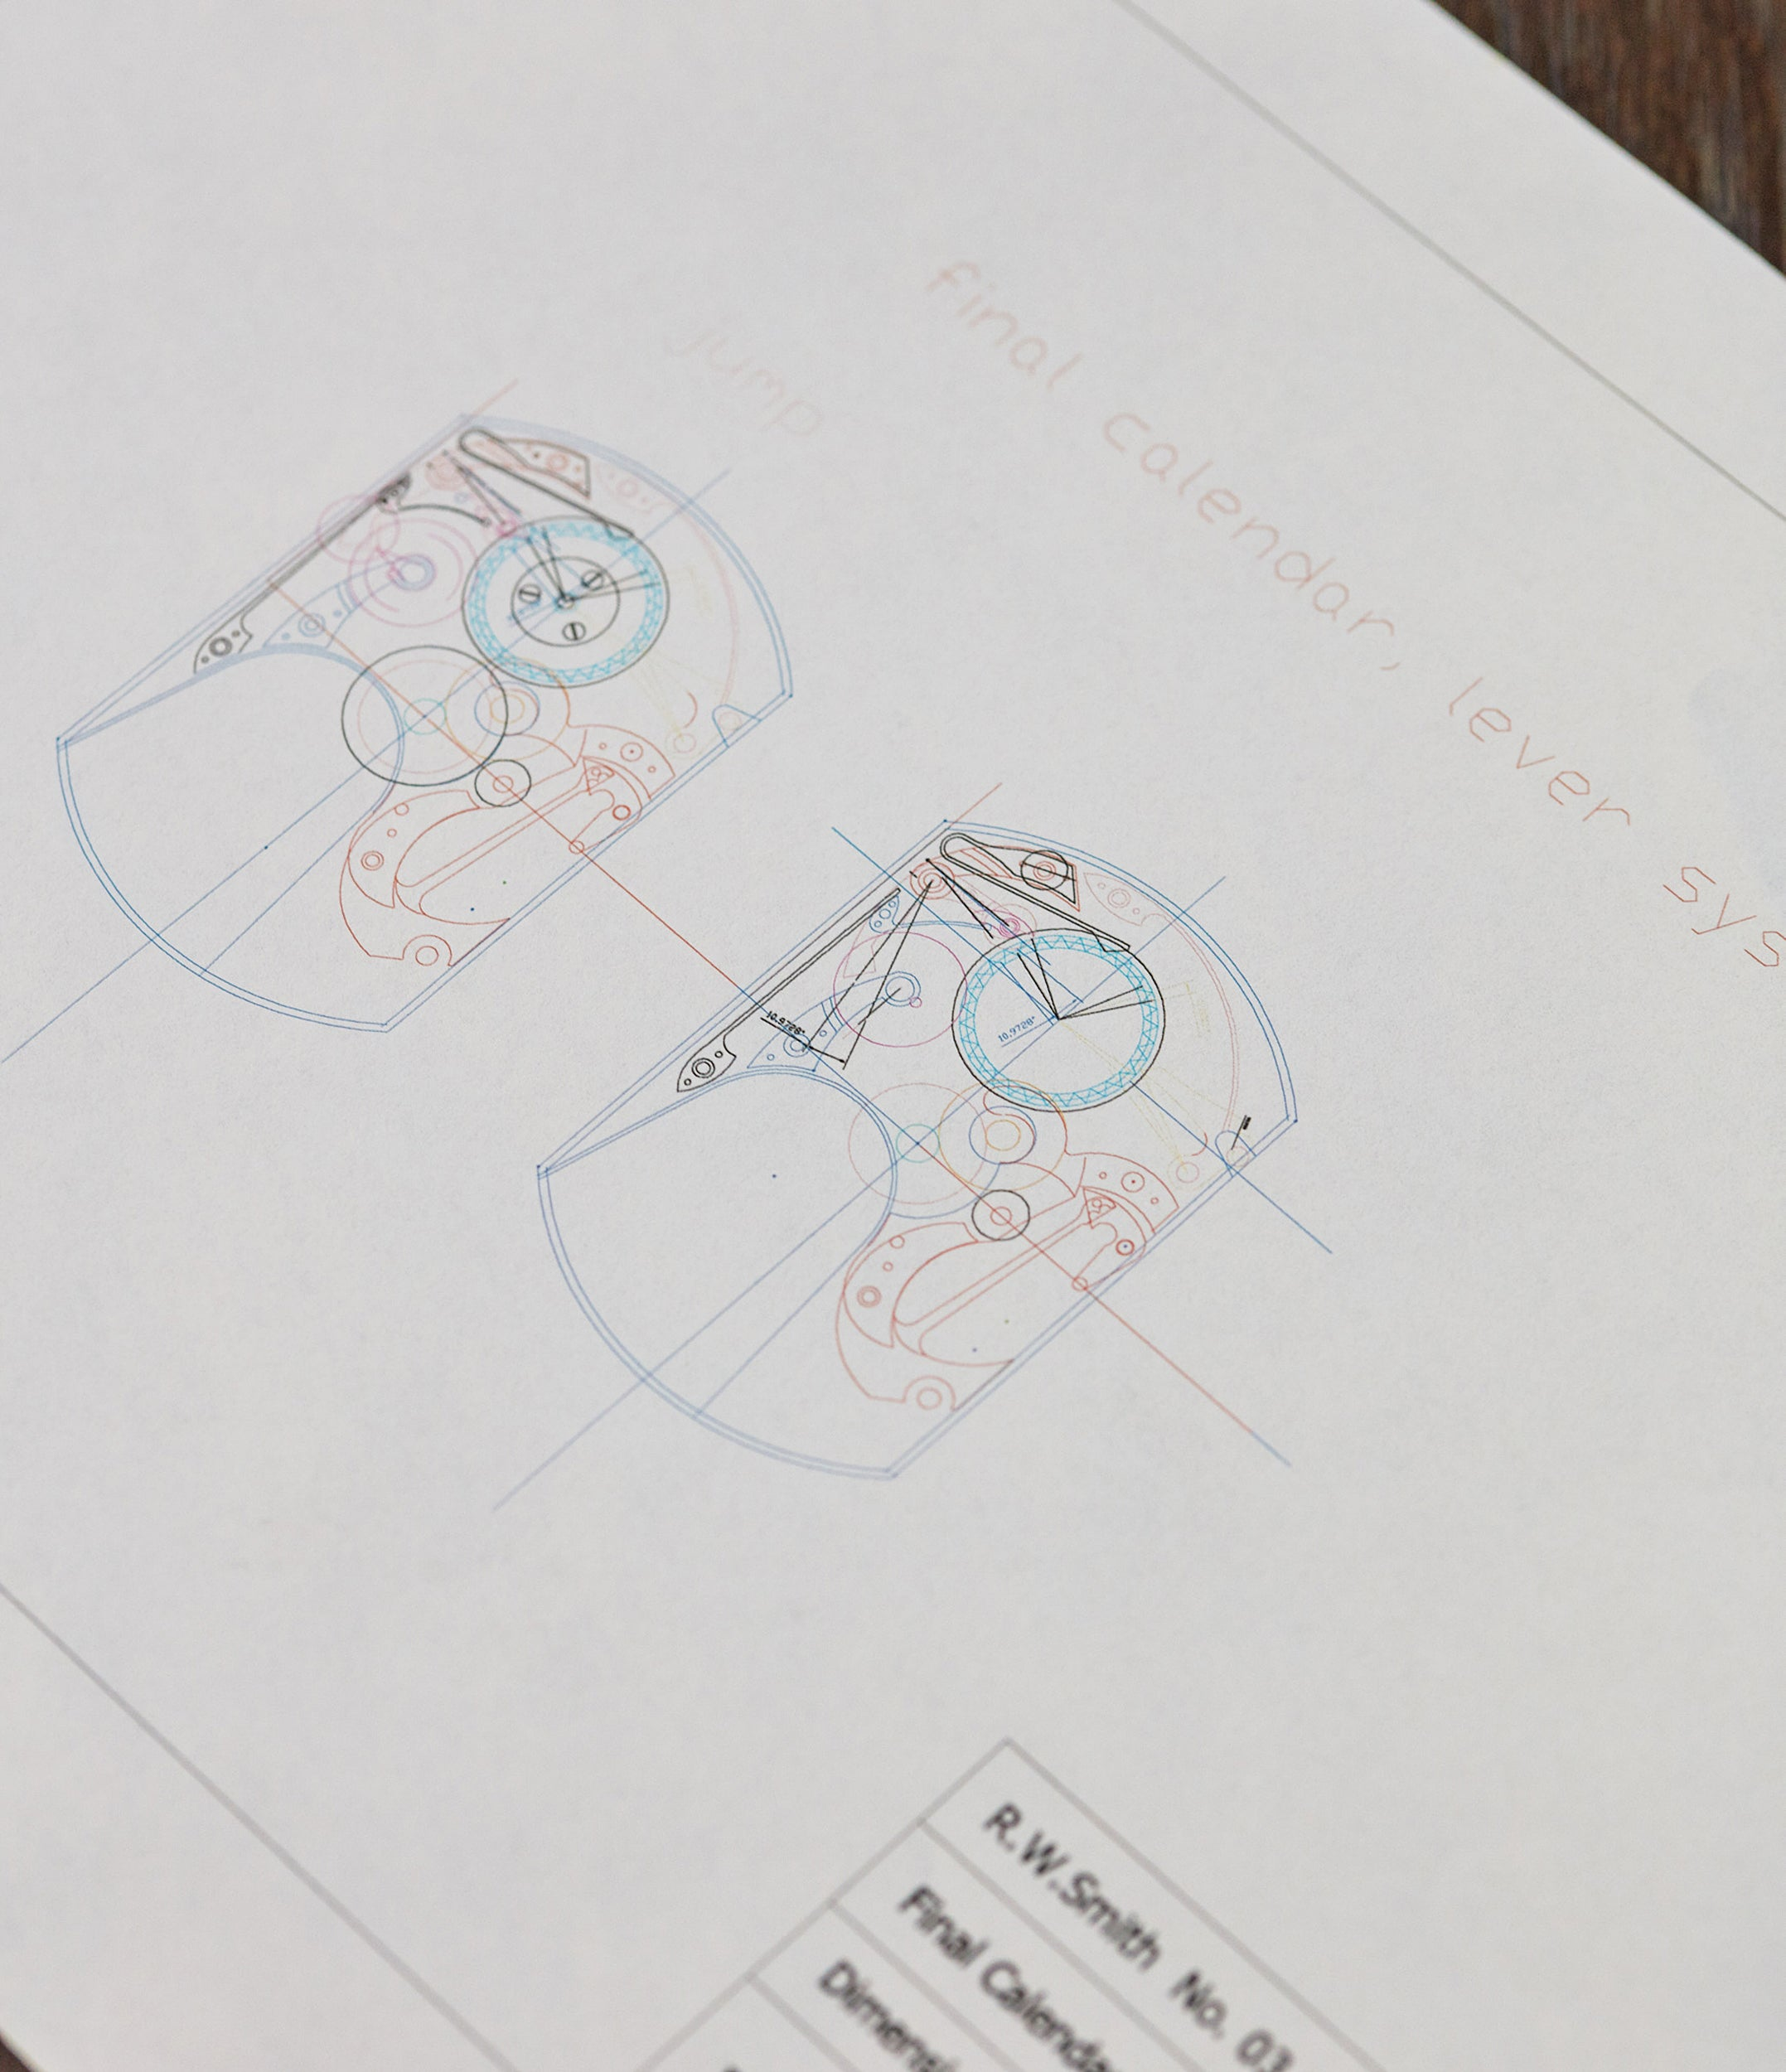 Roger W. Smith Watchmaker technical drawing of his No. 3 Tourbillon wristwatch for A Collected Man London